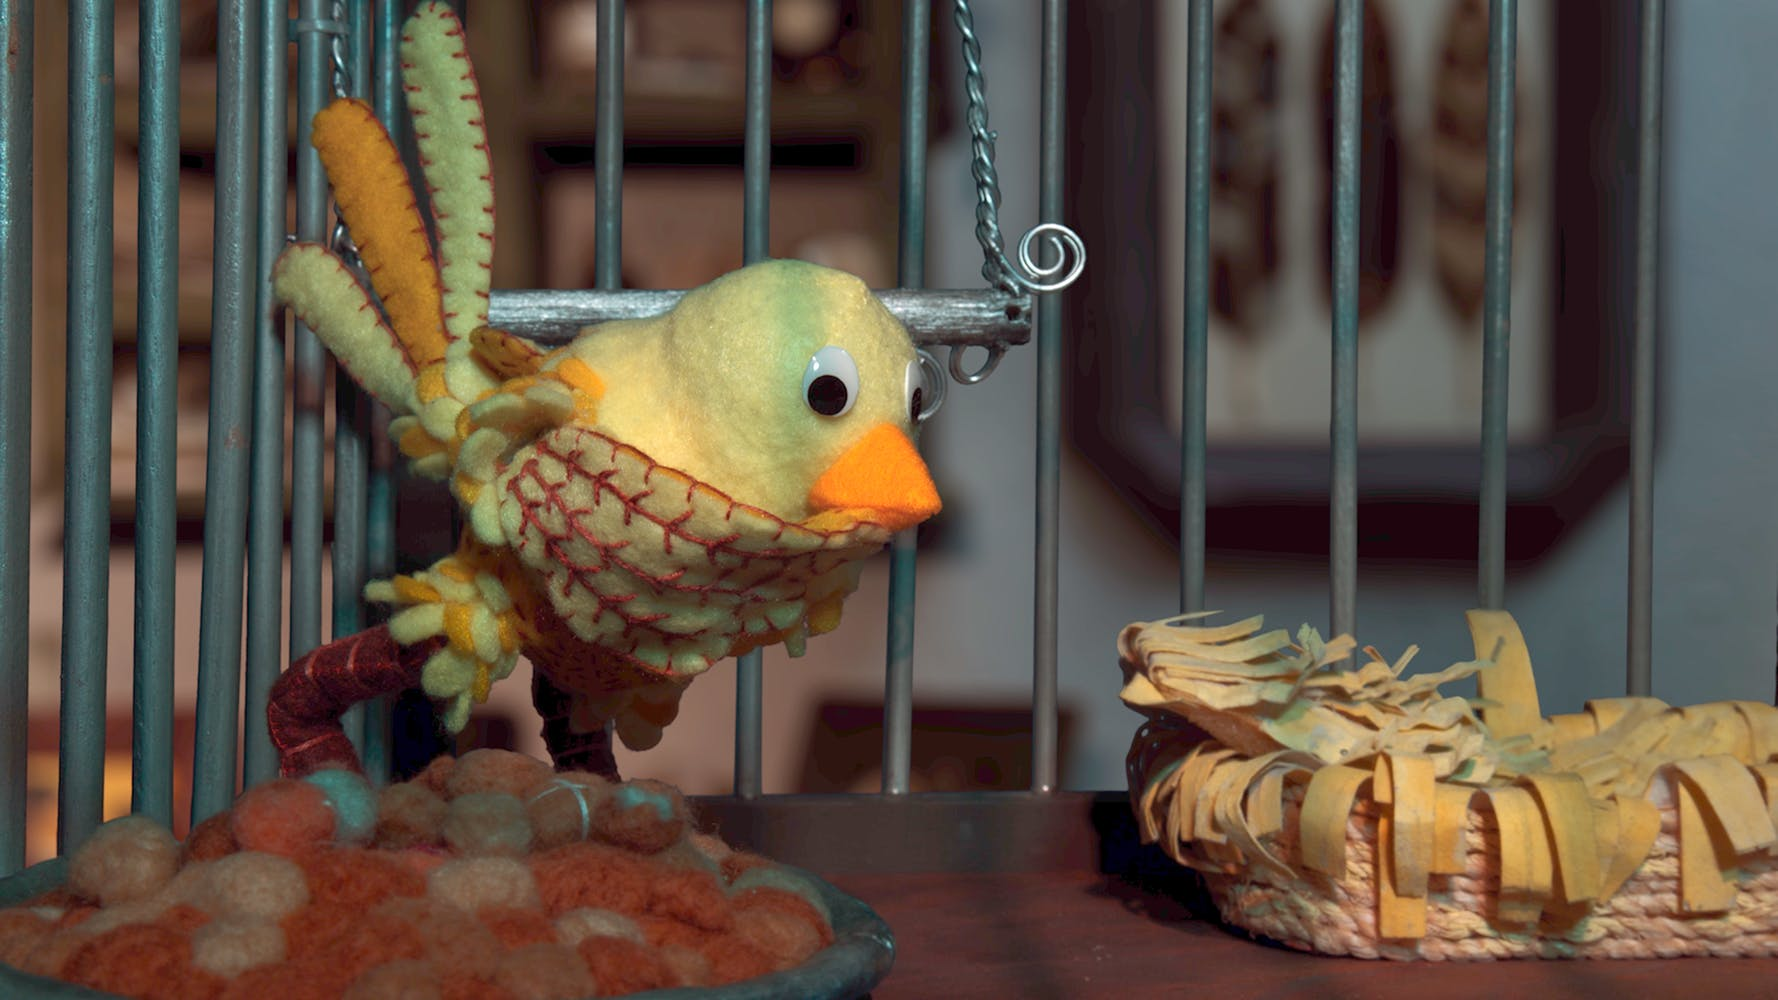 Yellow felt bird in a cage